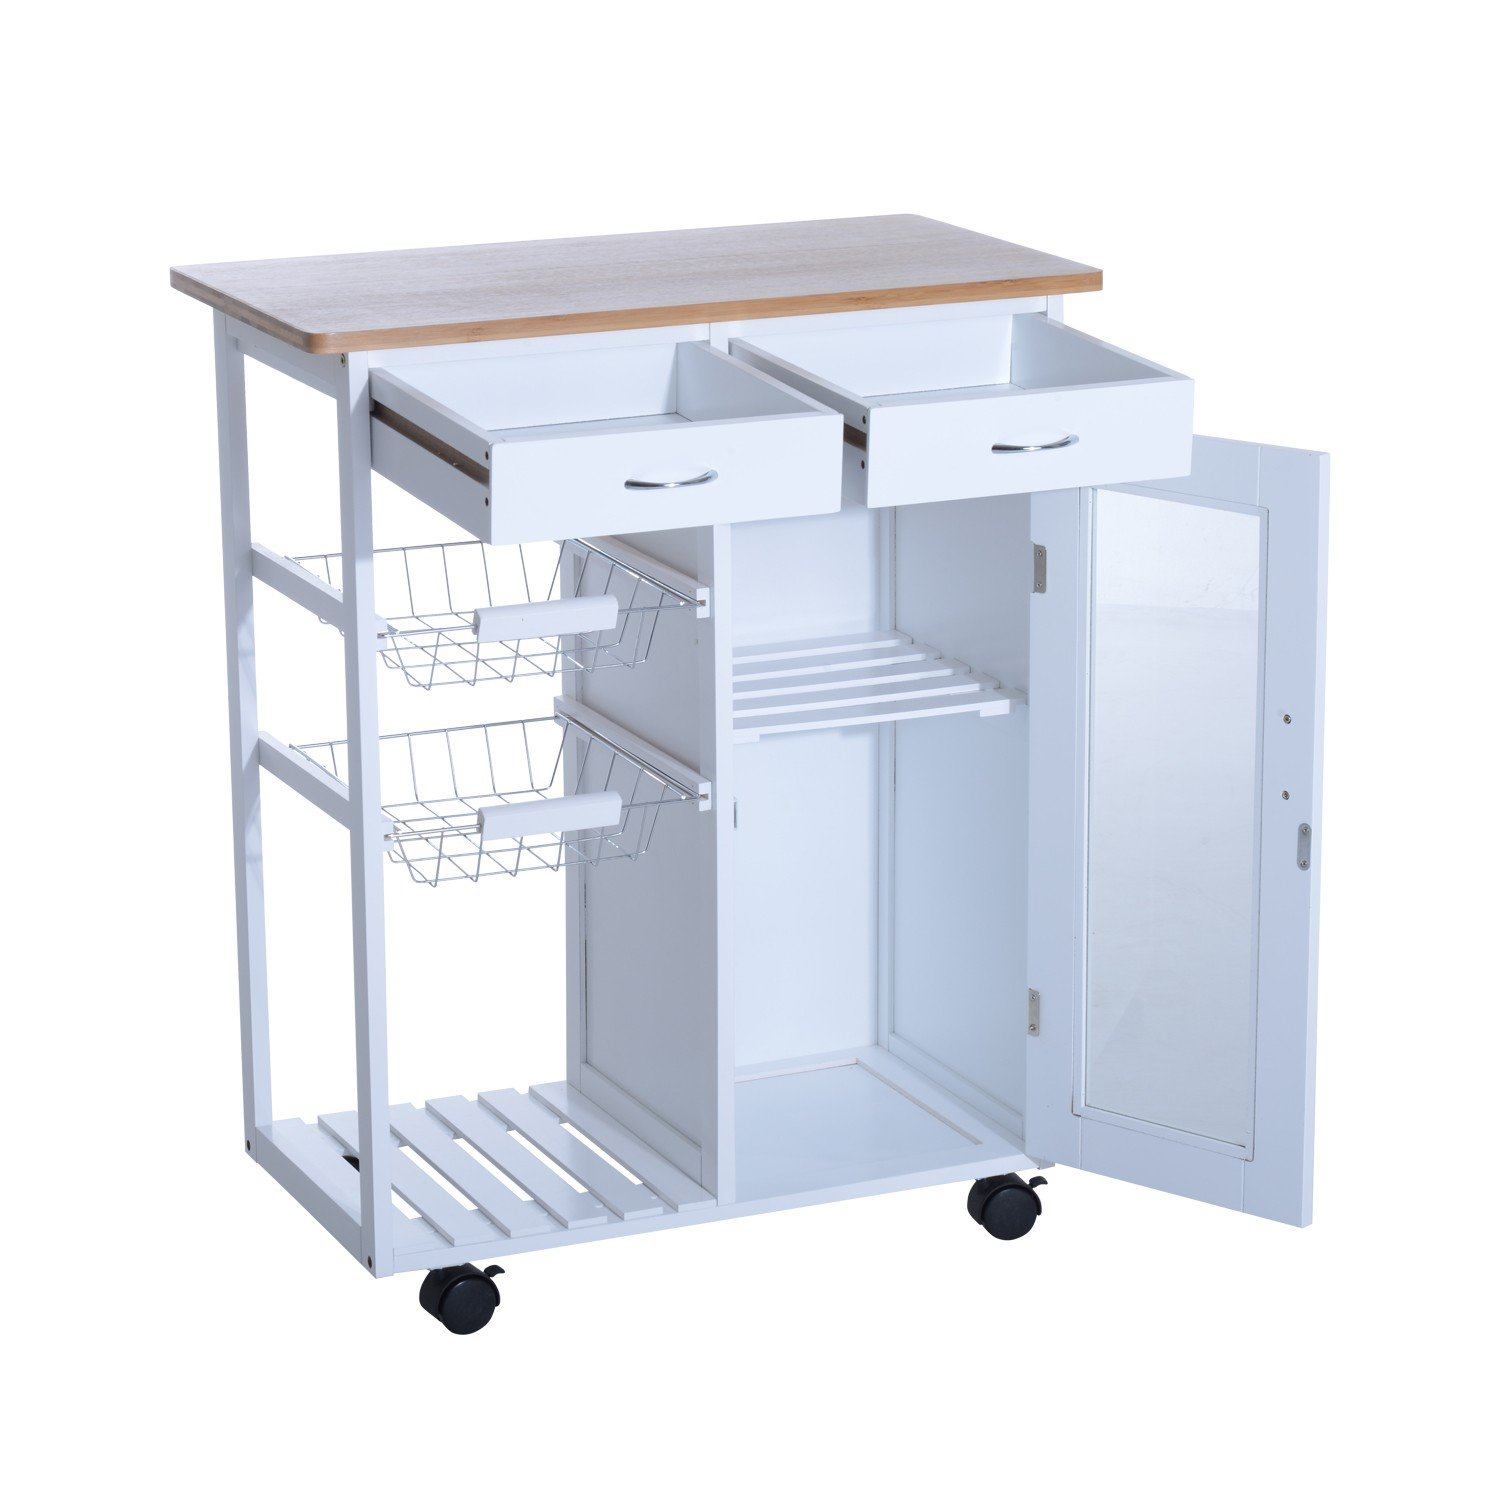 Rolling Kitchen Cart Utility Storage Island Trolley Cabinet - Drawer - Basket